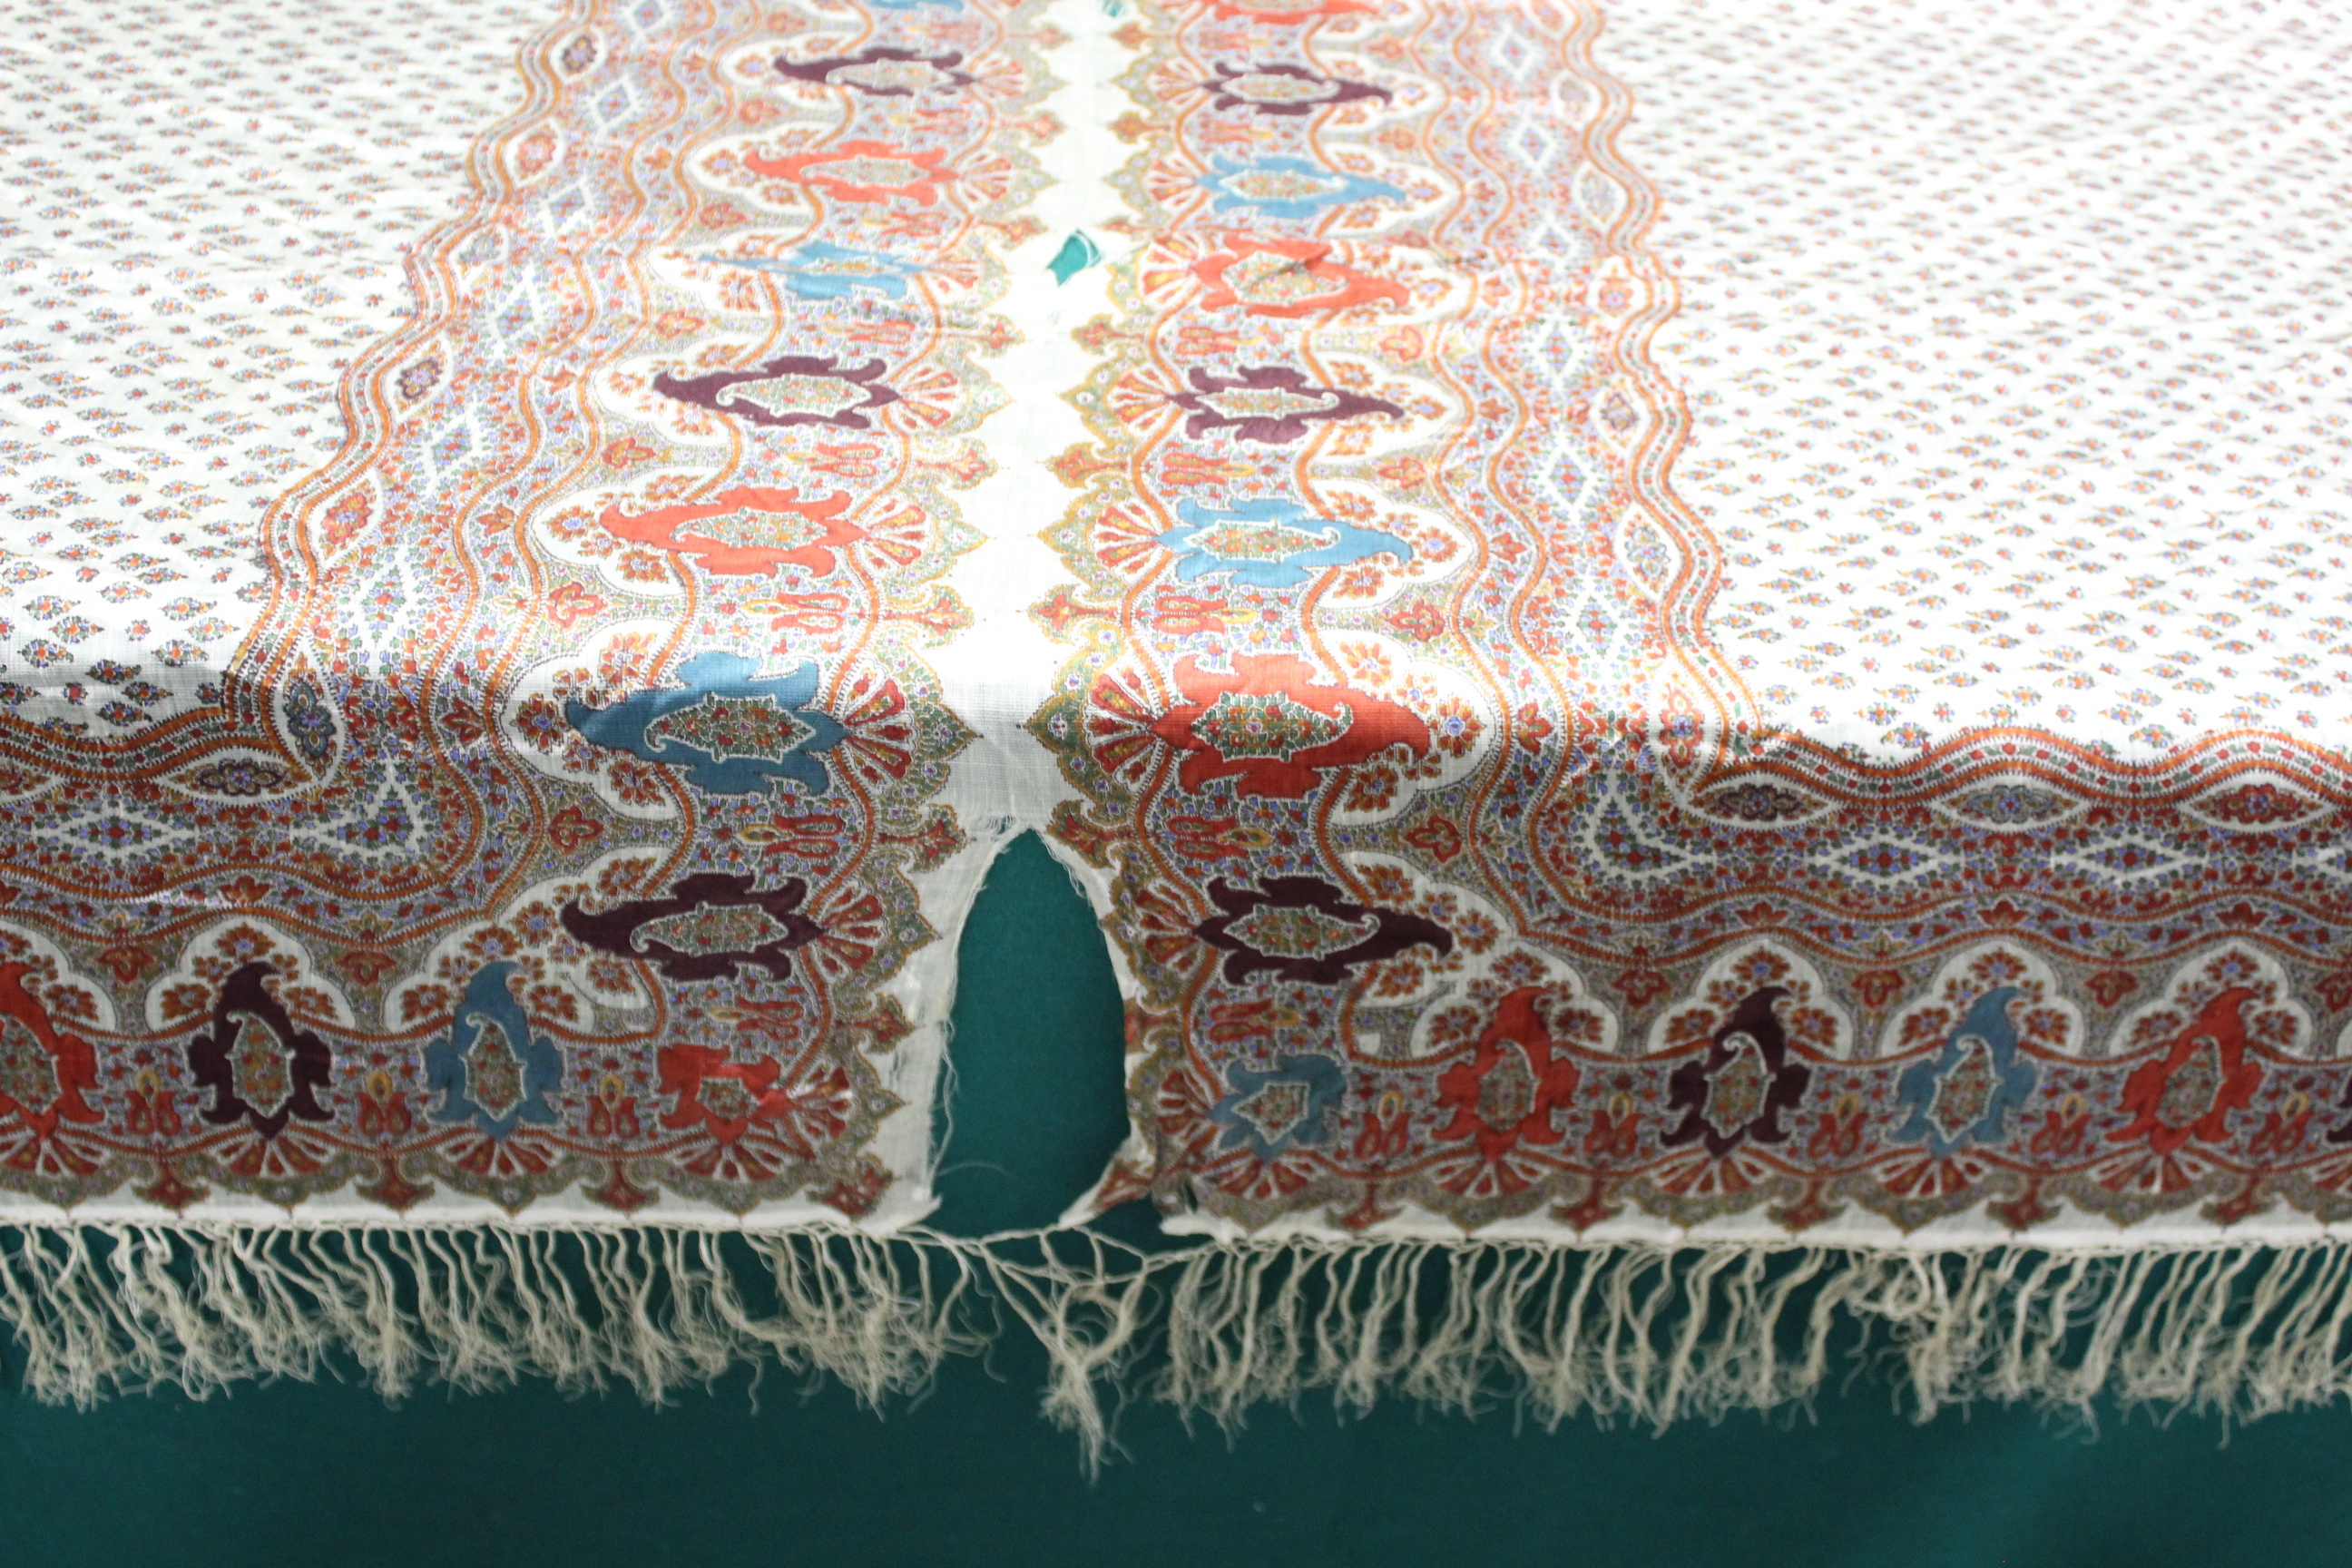 19THC PAISLEY SHAWL a mid 19thc paisley wool cashmere shawl (264cms by 126cms), and also with a fine - Image 7 of 9